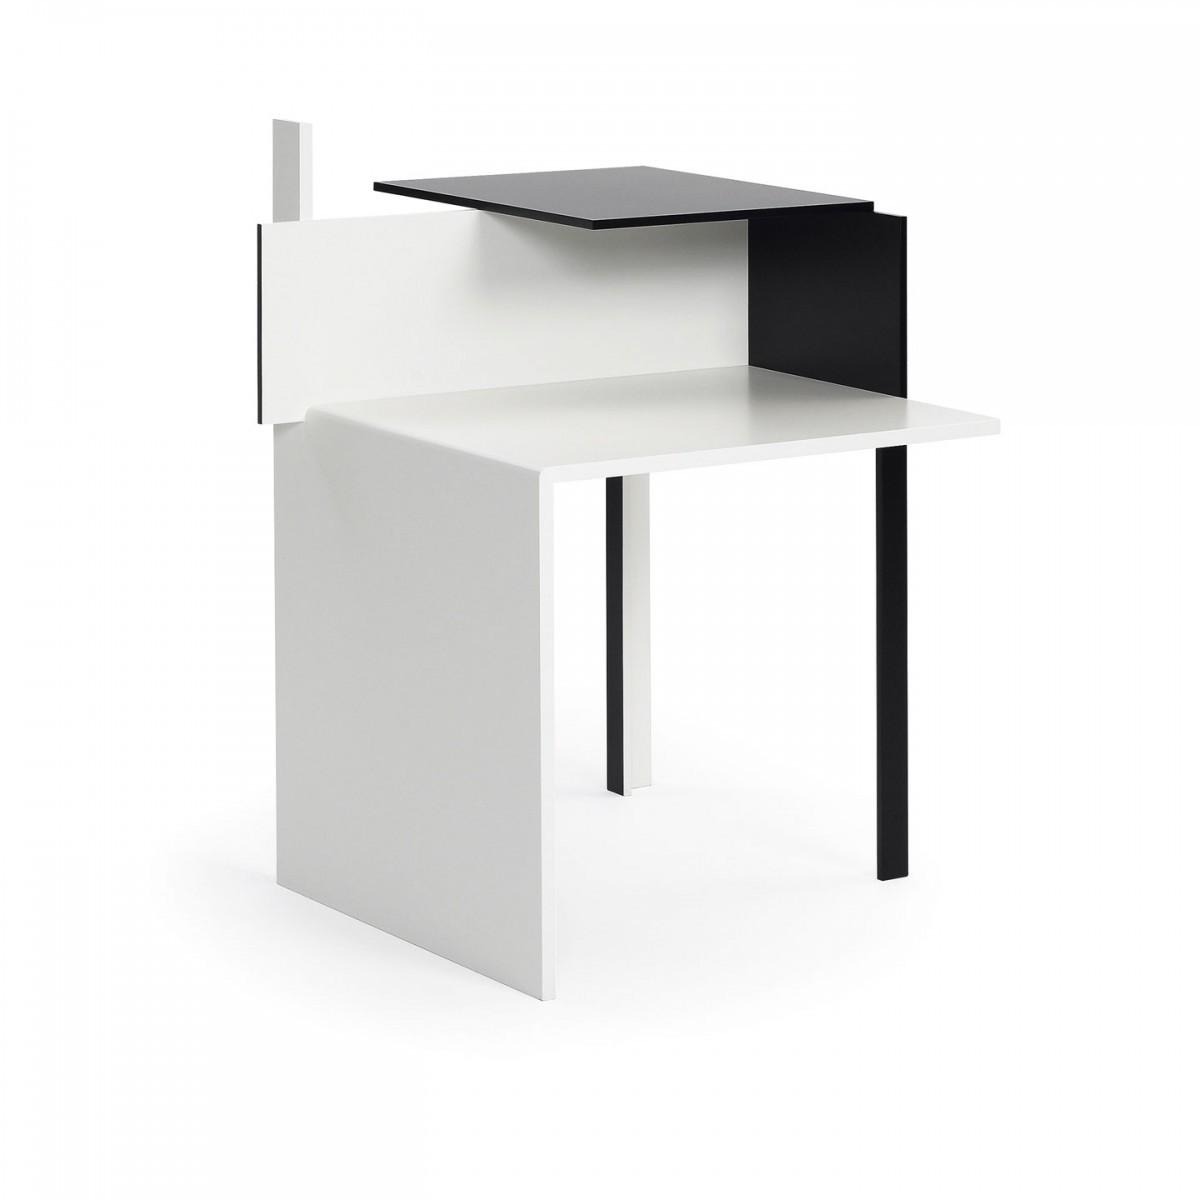 Eileen Gray Stijl Table Designers More